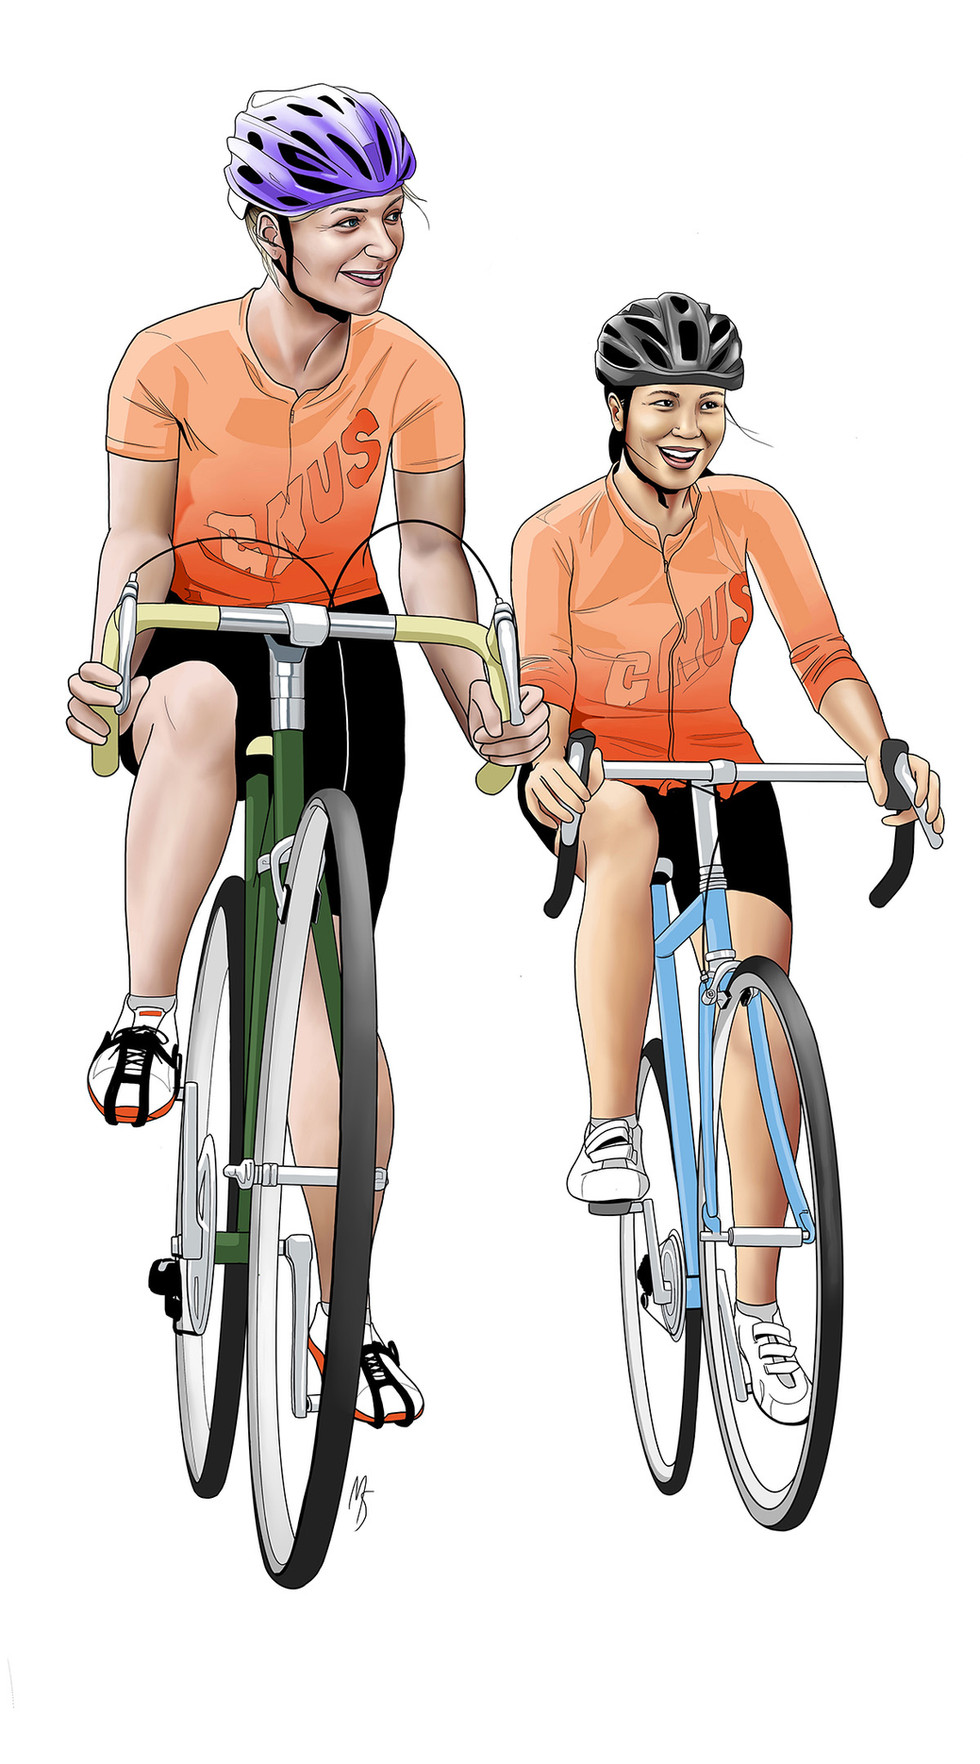 Character illustrations for Cyclist-Driver Safety Campaign, Town of Milton